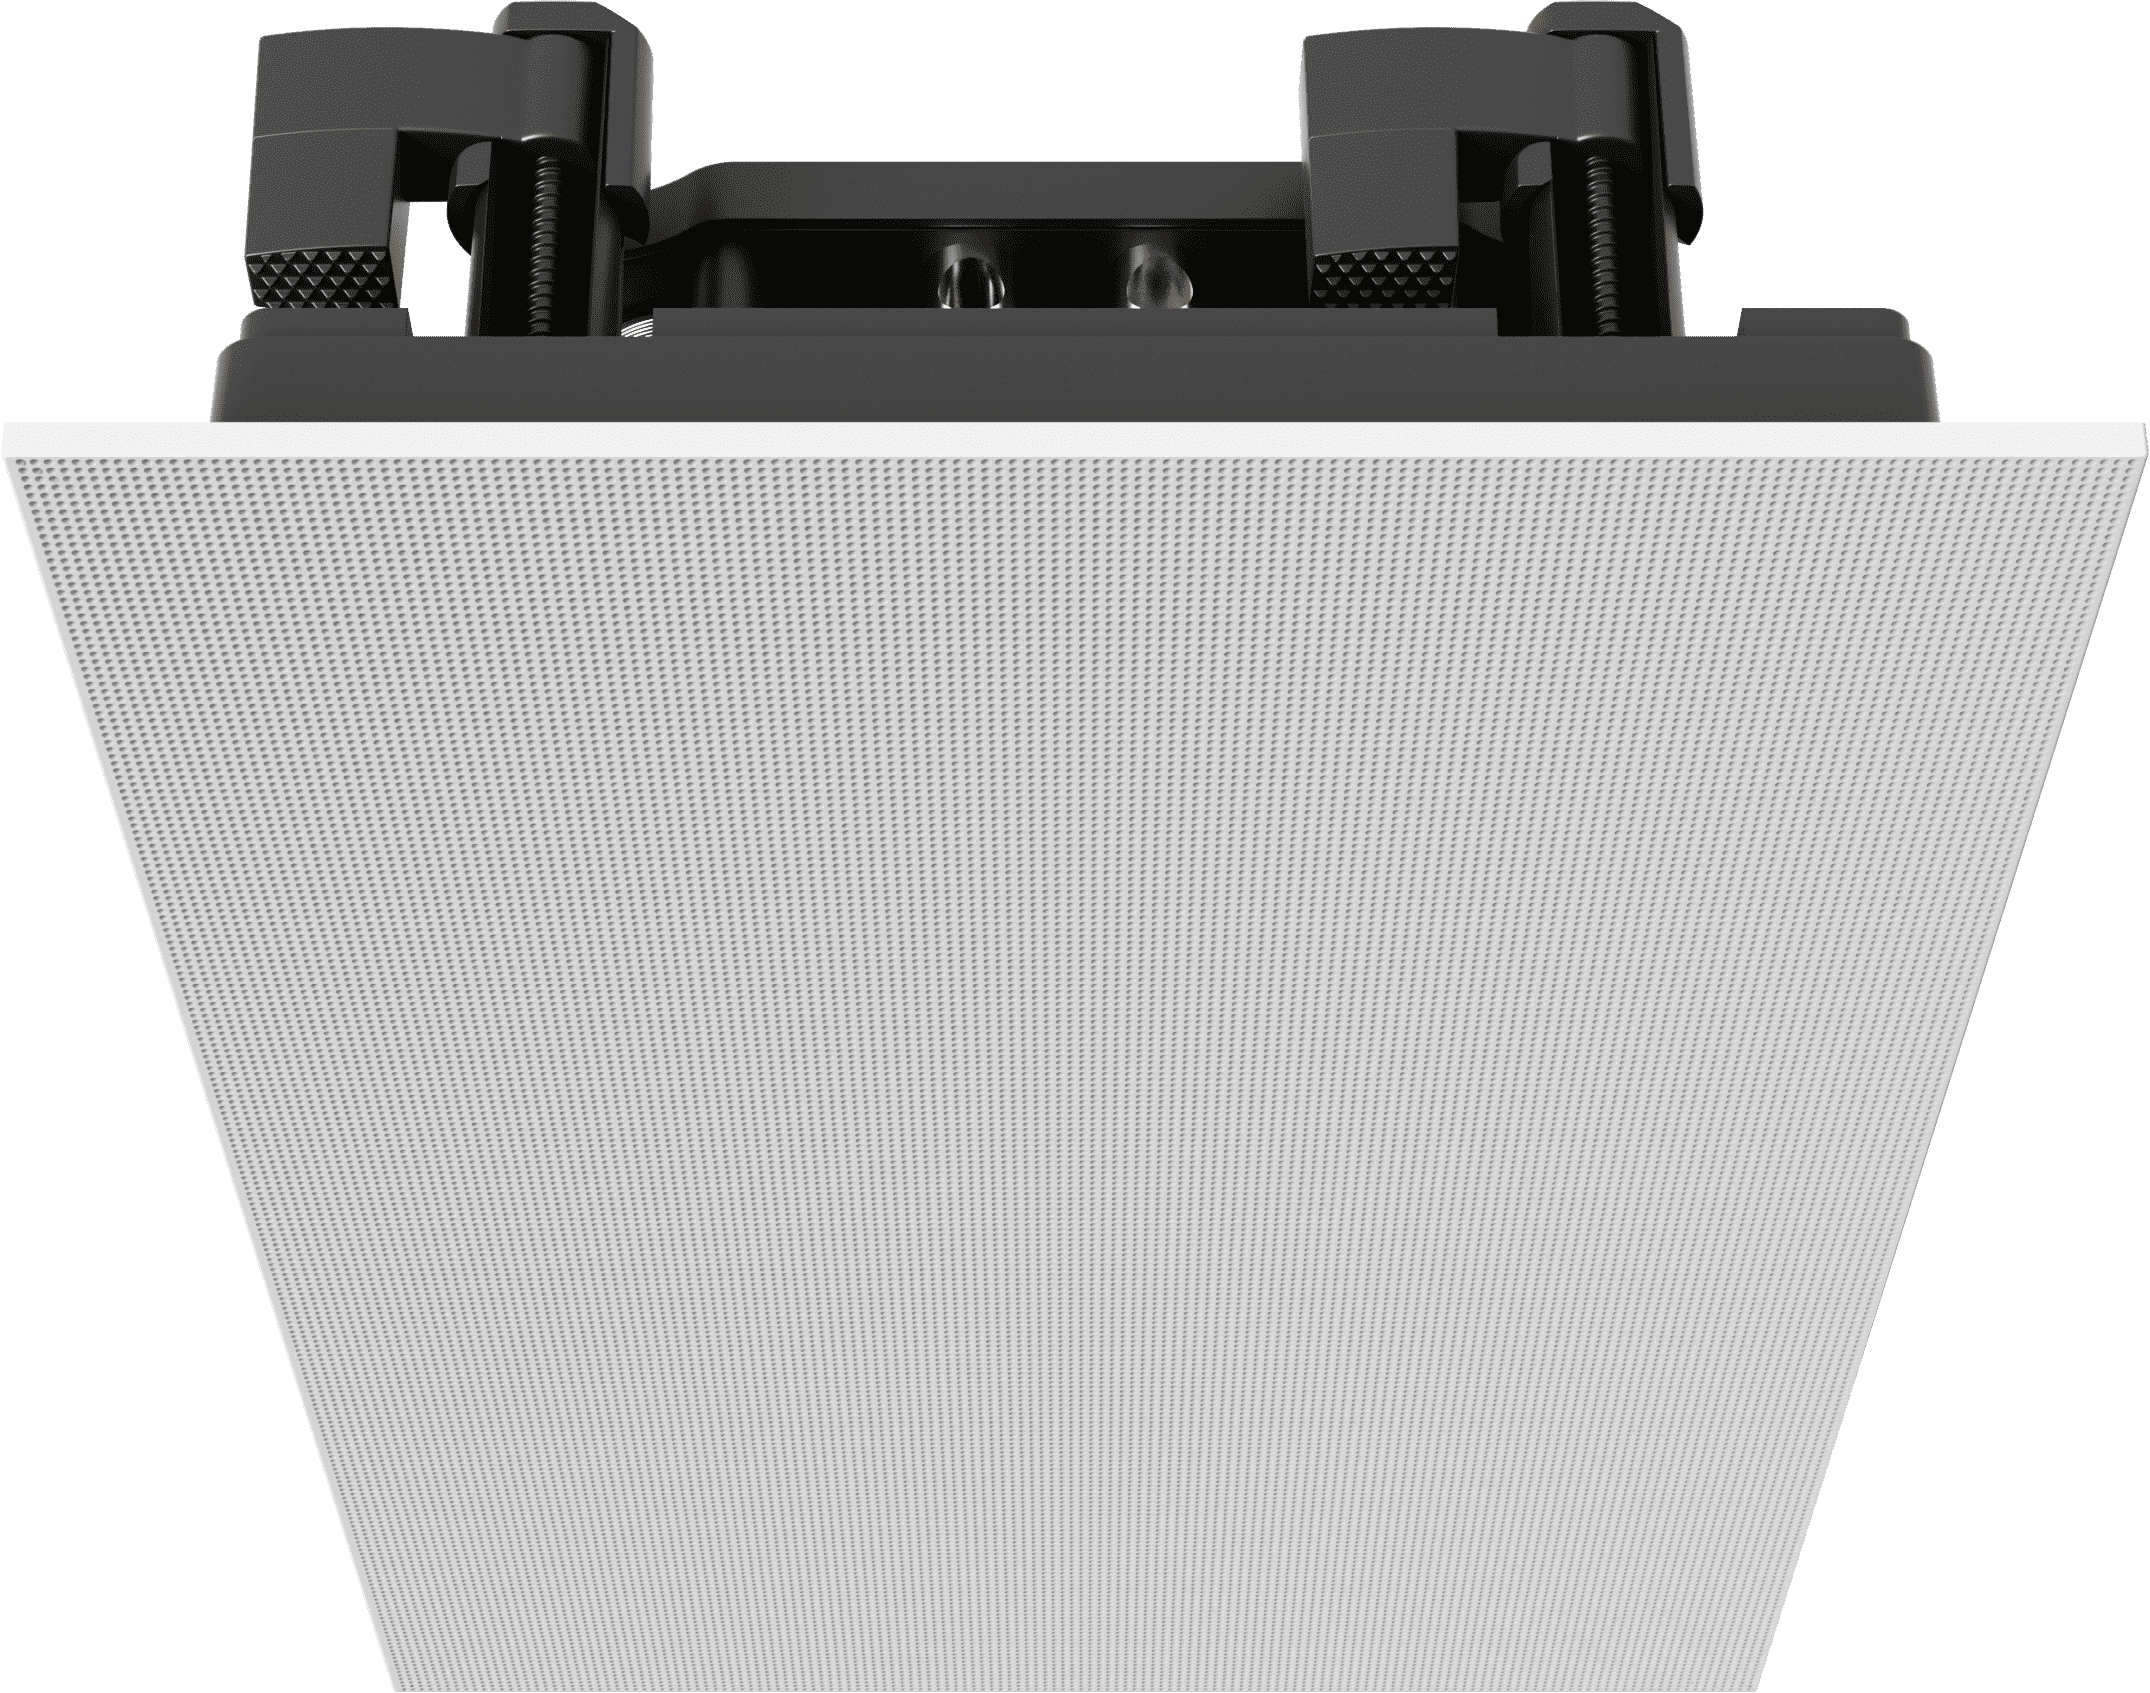 InWall_Speakers__Pair__Powered_by_Amp__Architectural_Speakers__Customizable_Grilles__Sonos